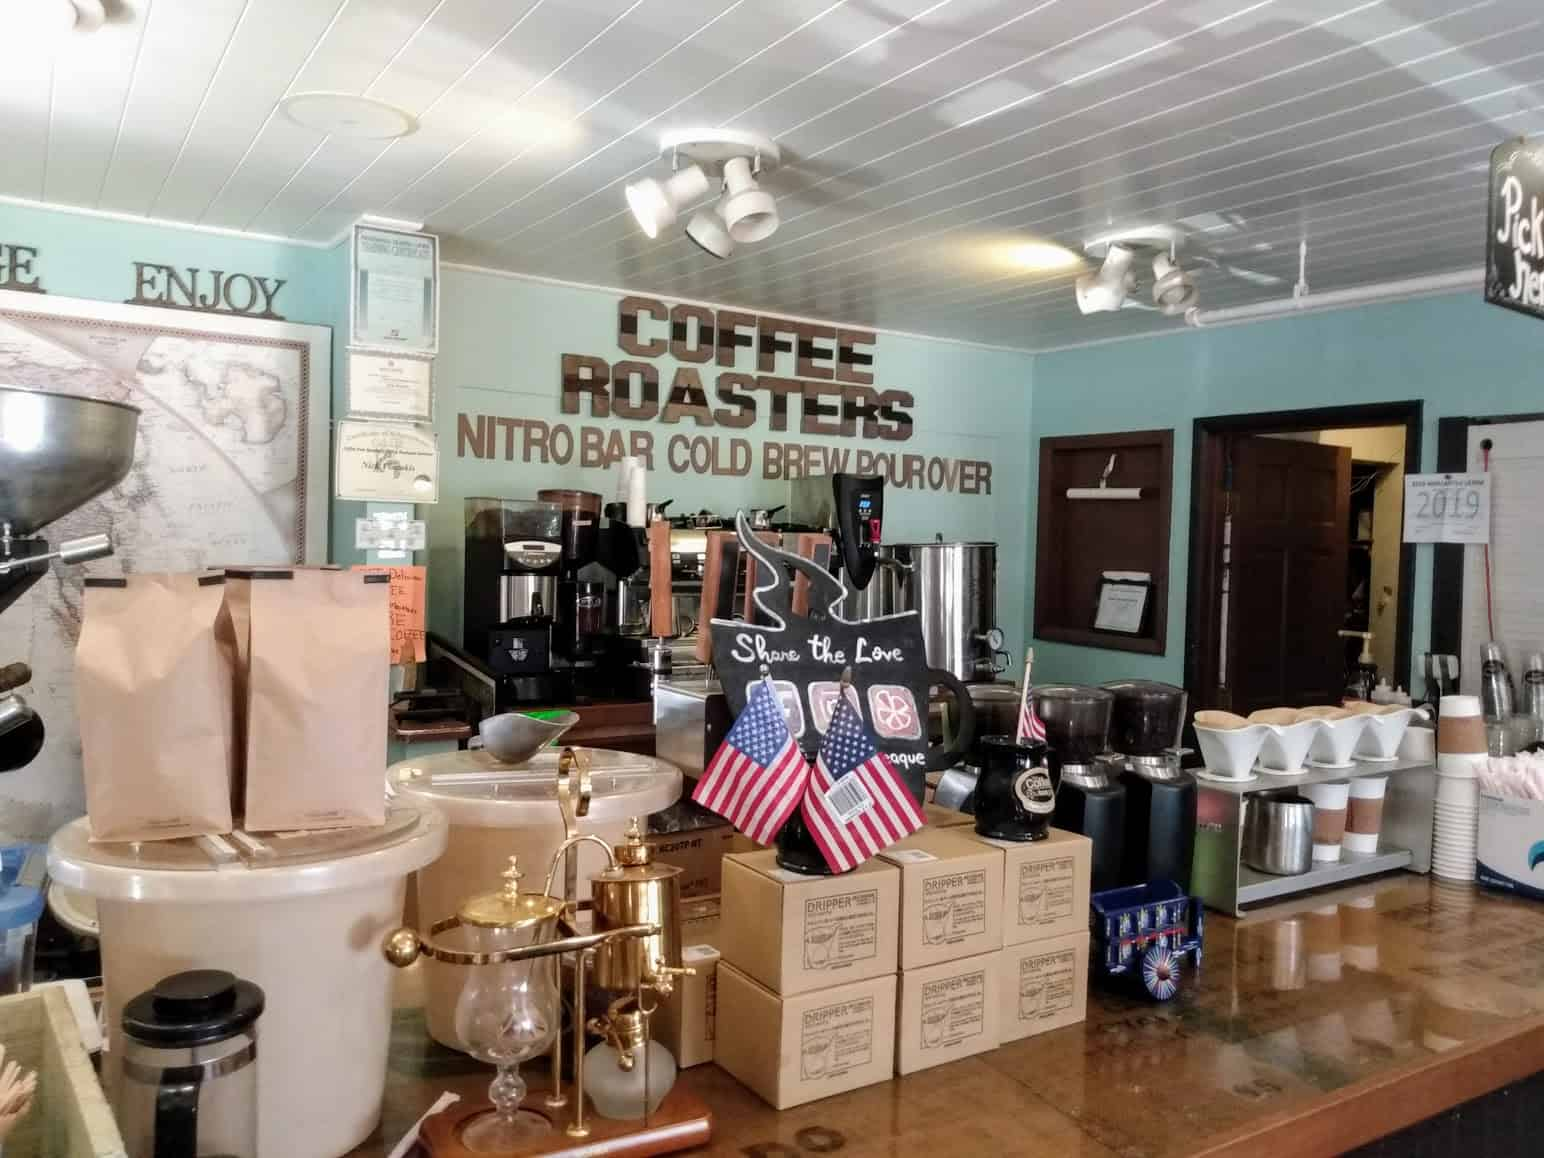 The Coffee Bouteaque in Beach Haven